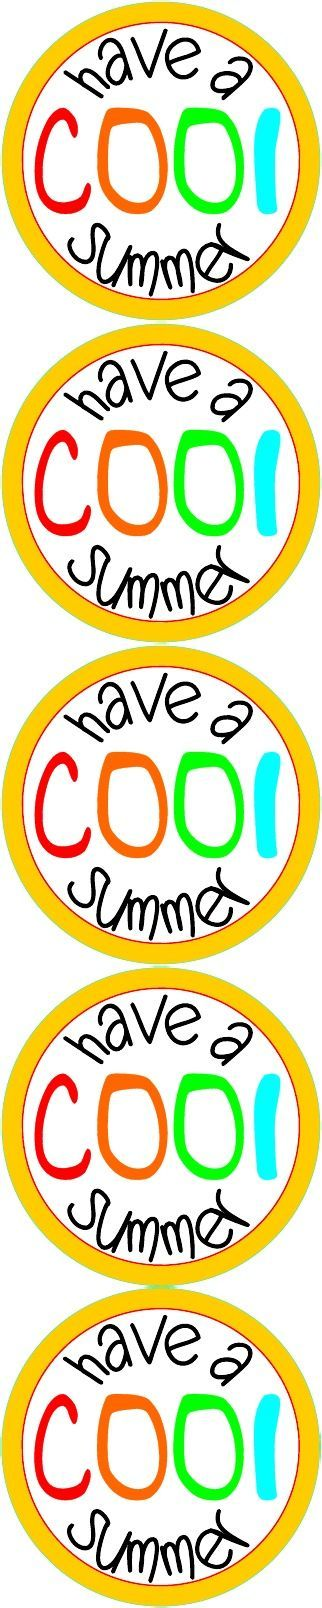 It's just a picture of Sizzling Have a Cool Summer Printable